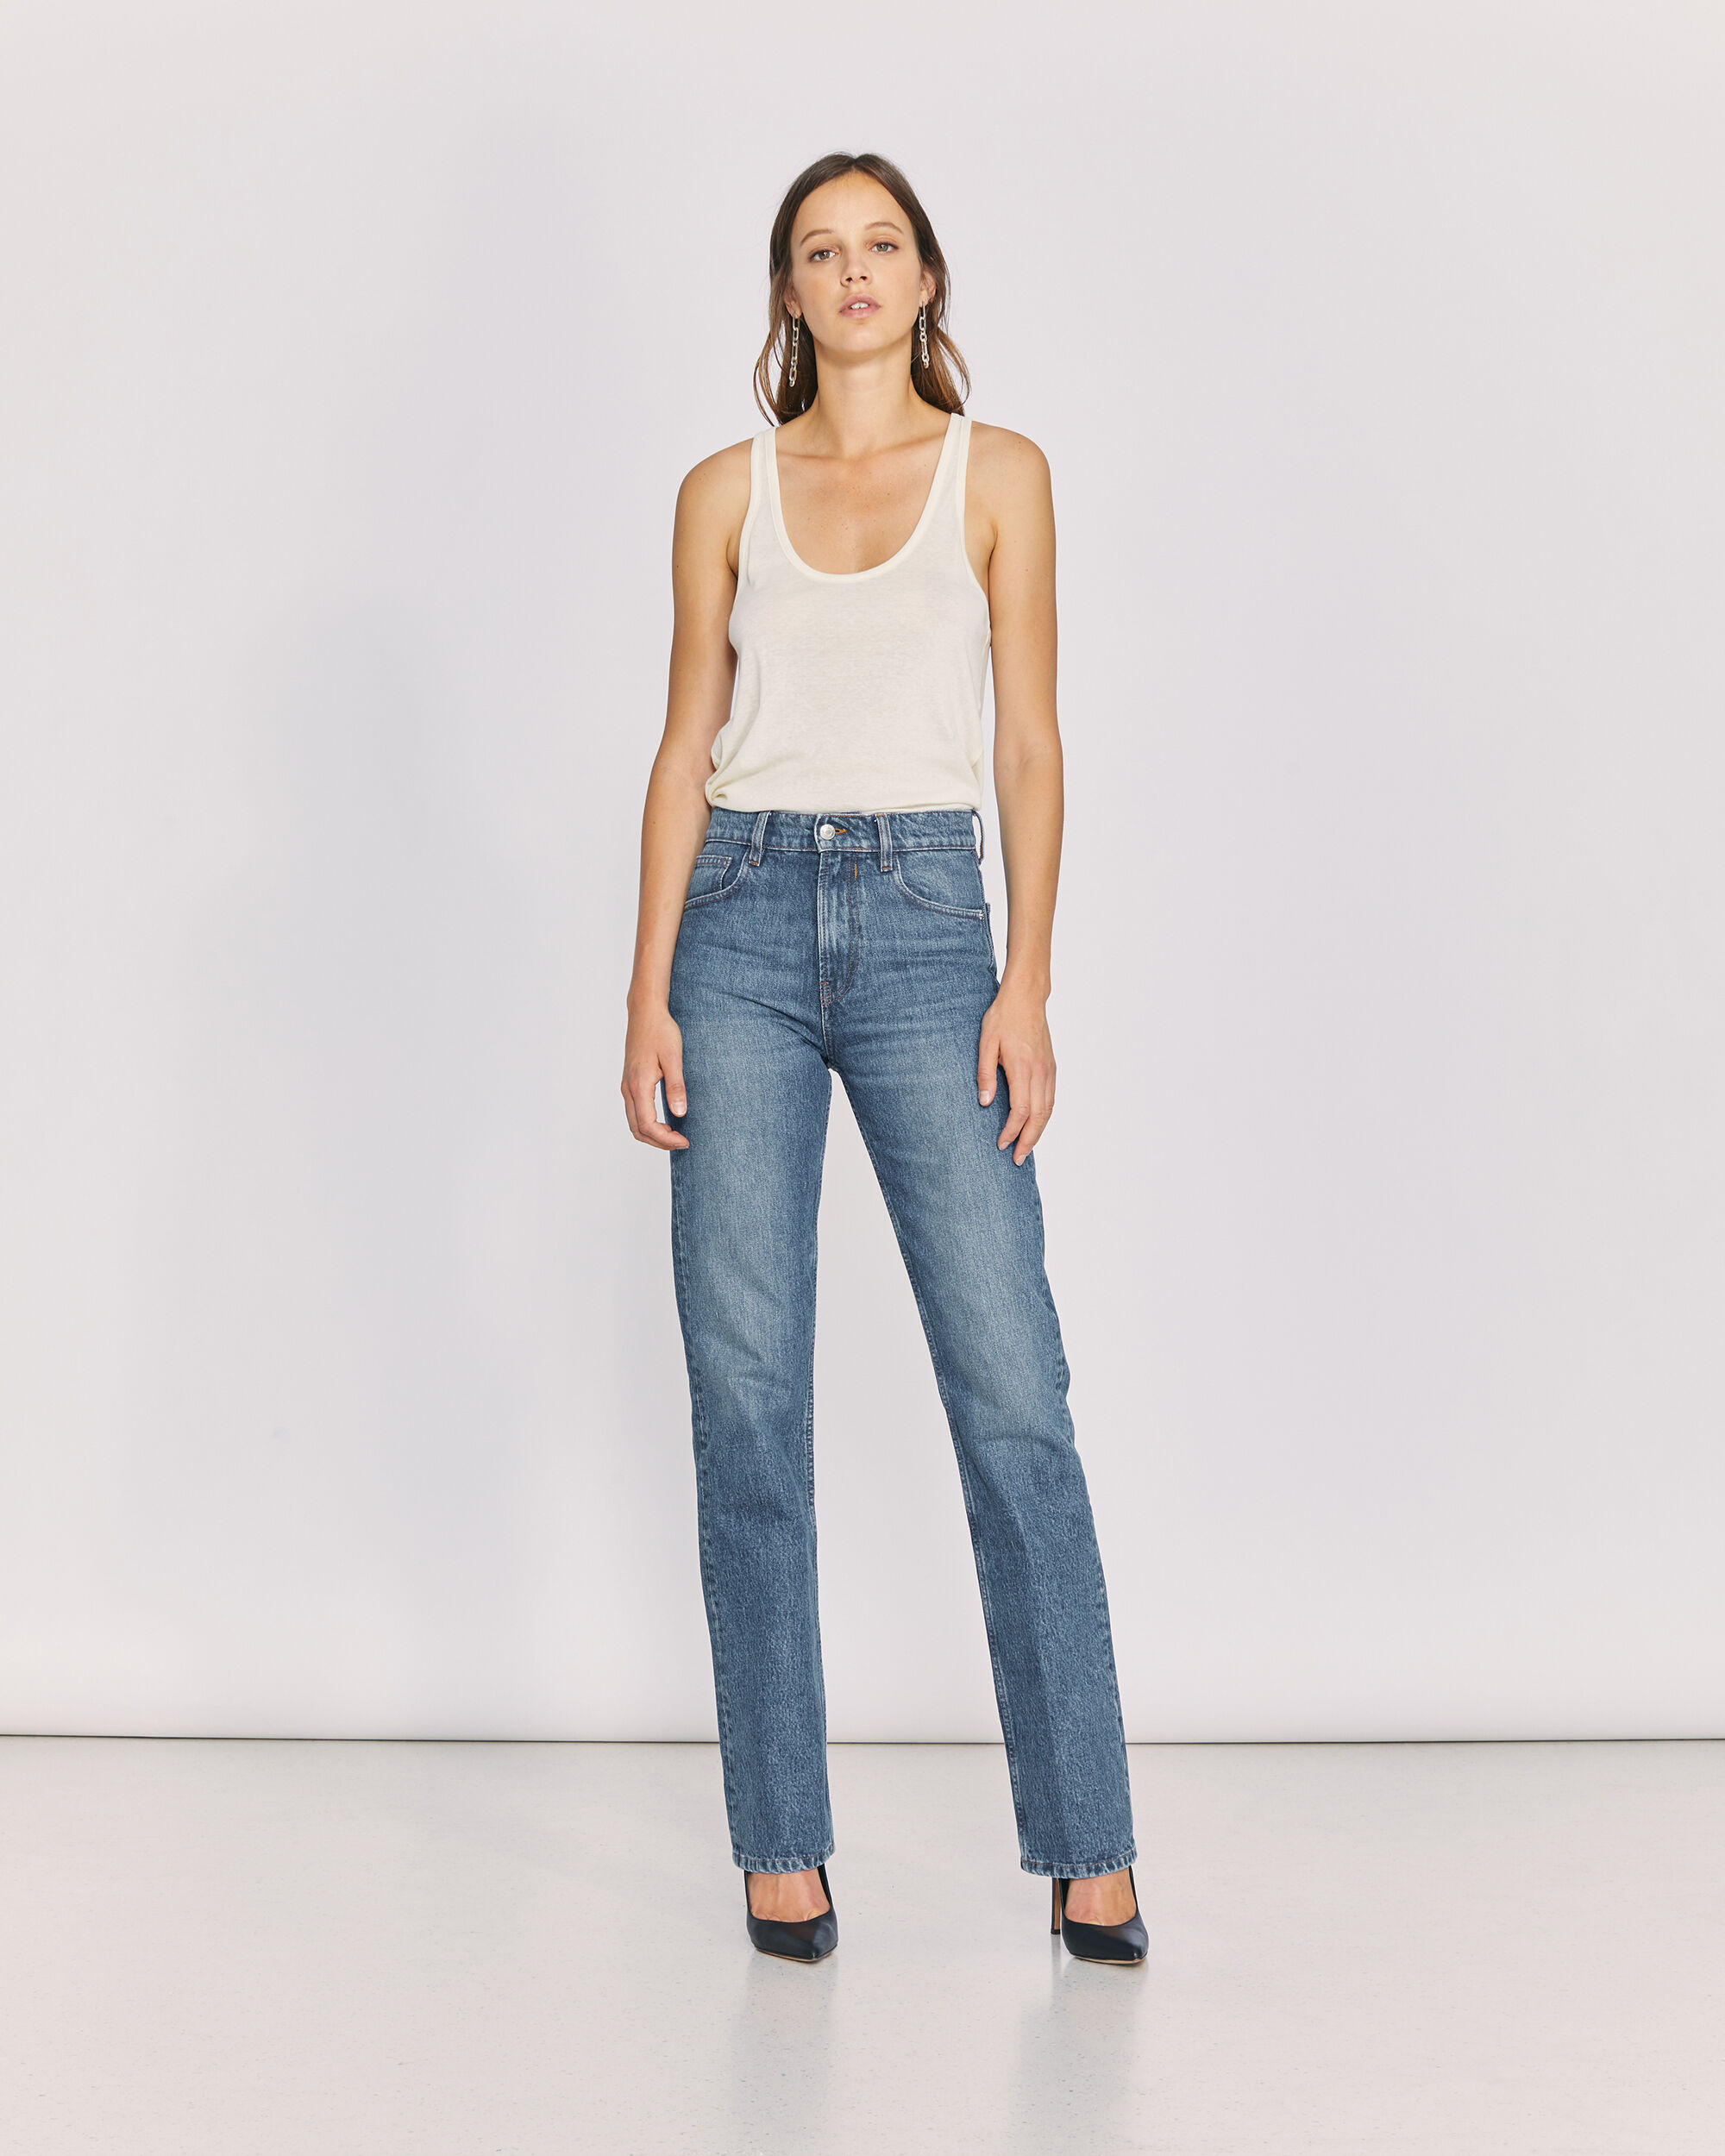 IRO SLATE JEANS,COUNTRY MID BLUE